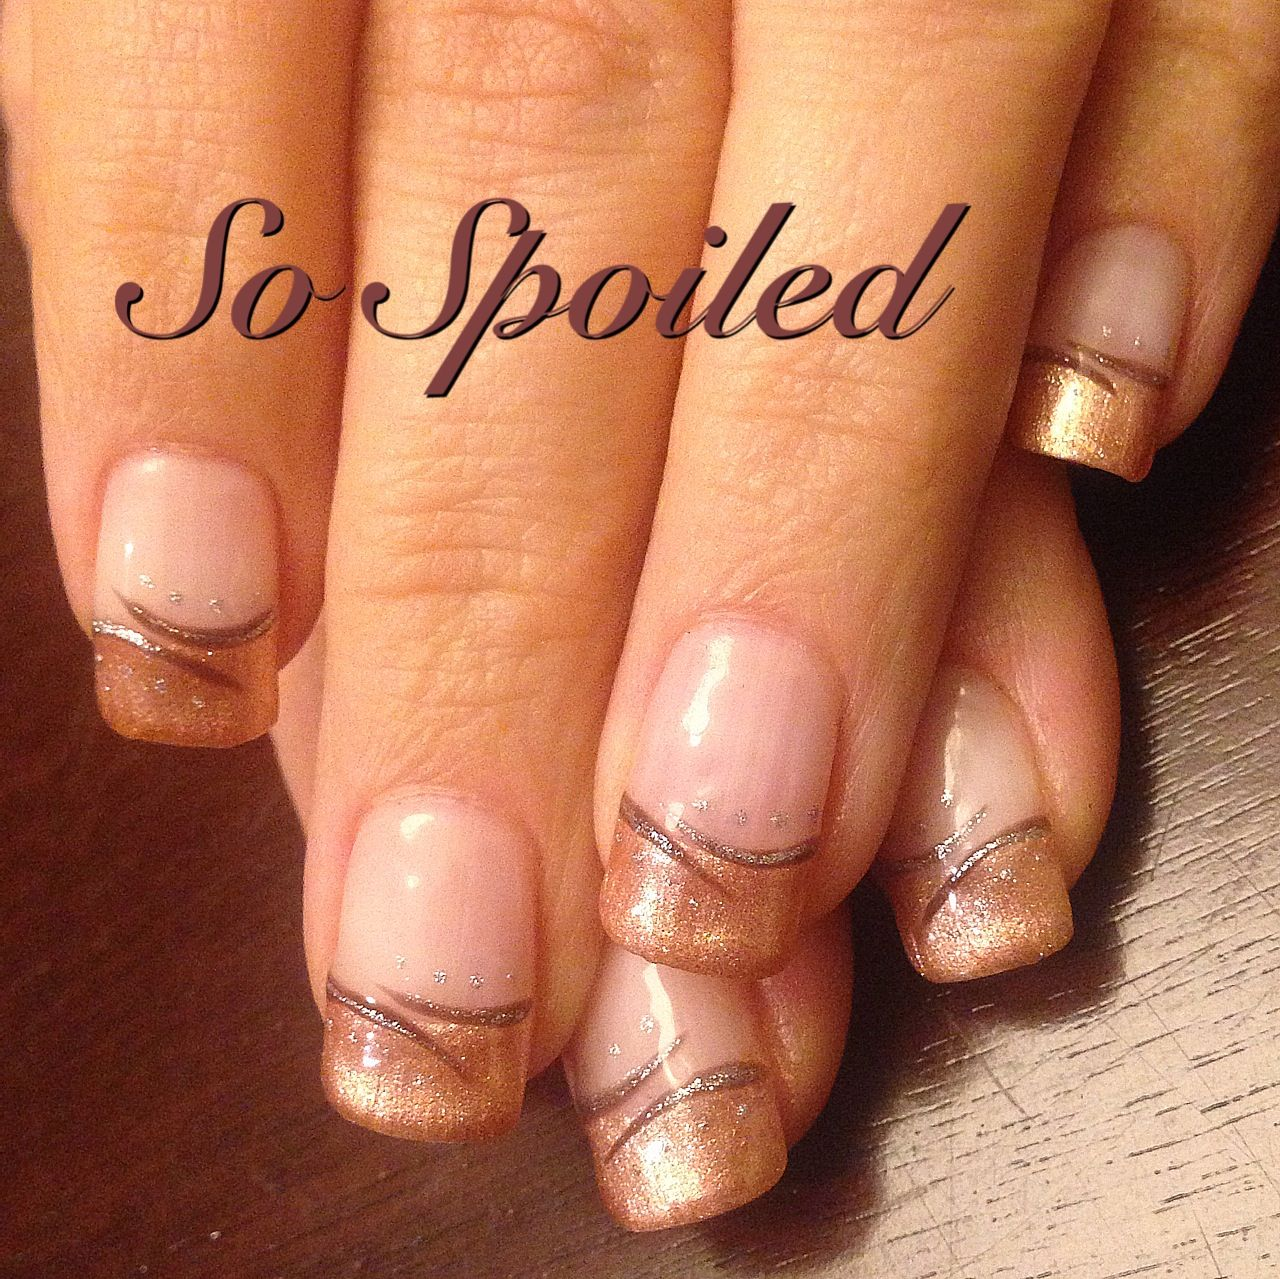 Nail Art Rose Gel: Manicure ideas for short nails with gel polish ...